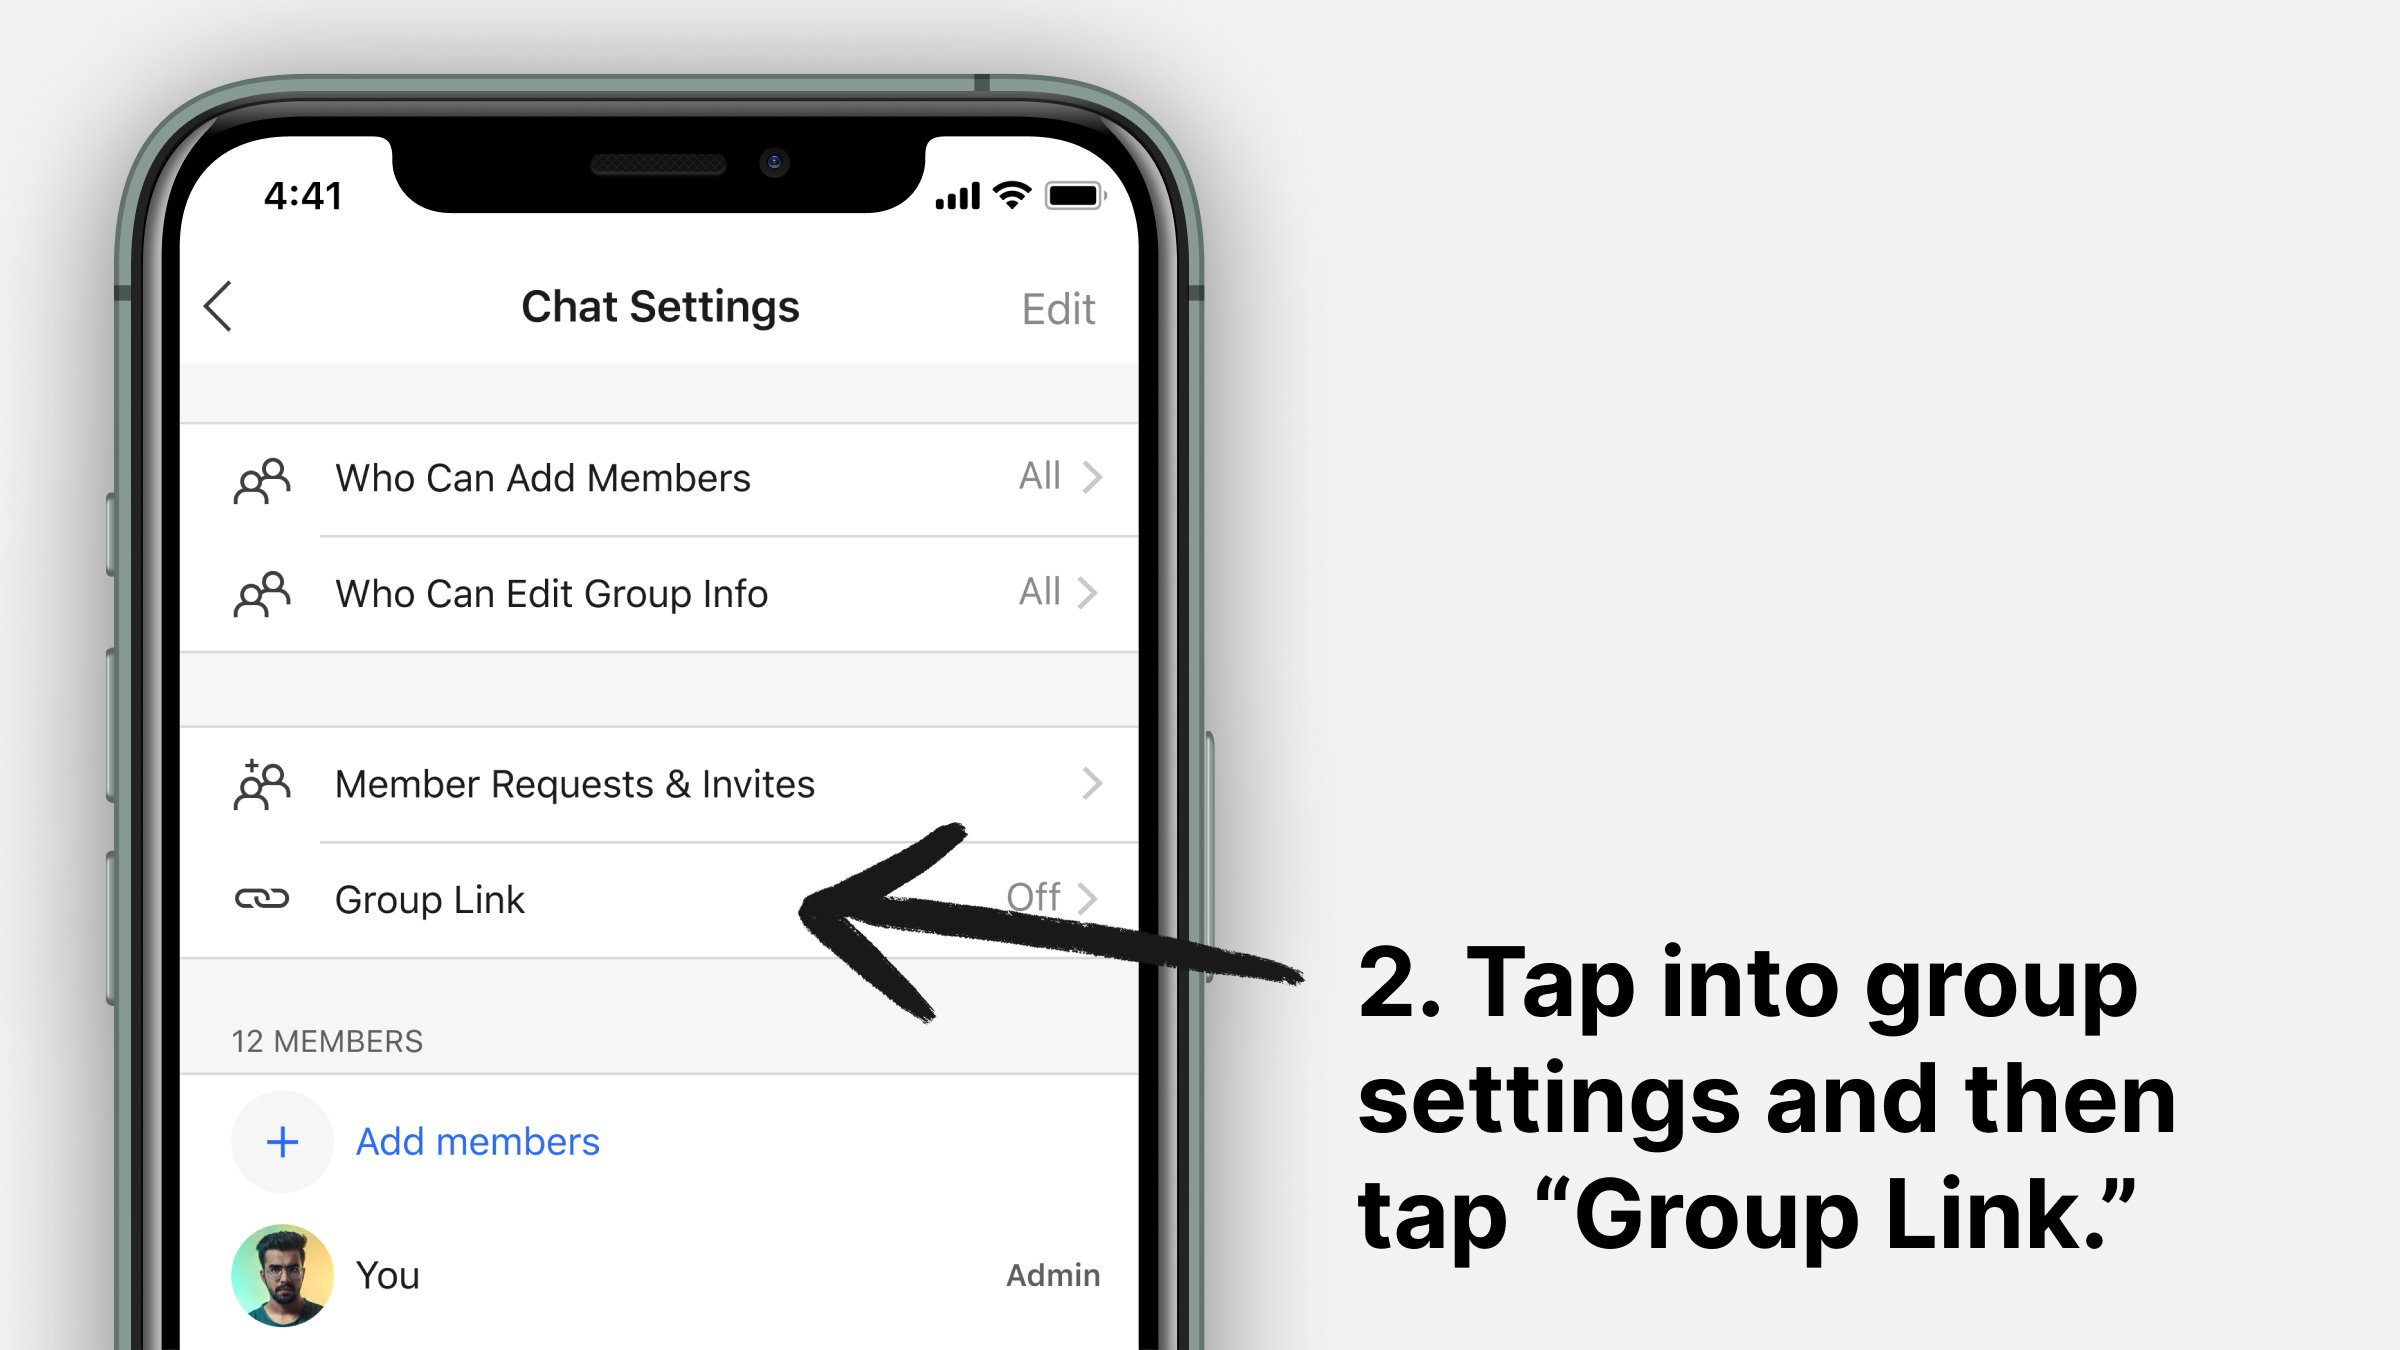 Simple steps to create and transfer groups to Singal